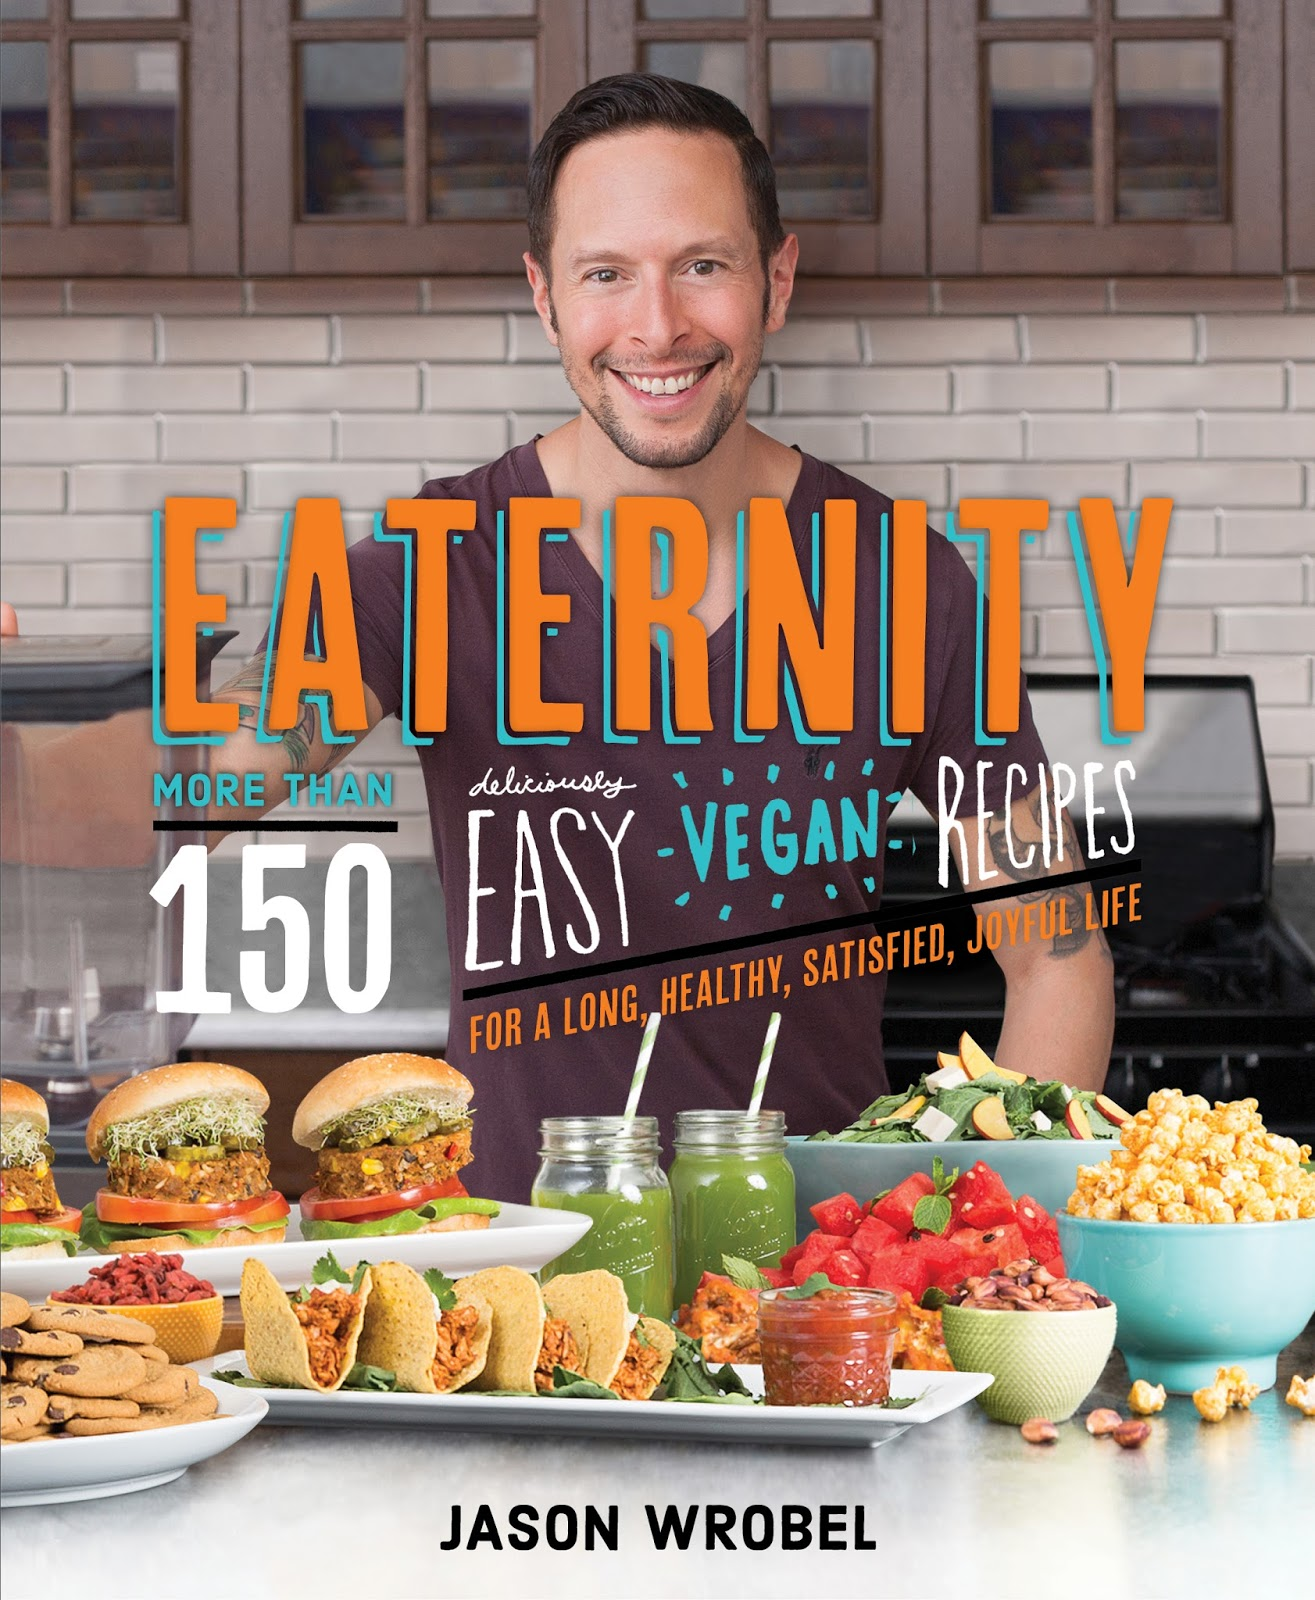 Eaternity cookbook by Jason Wrobel